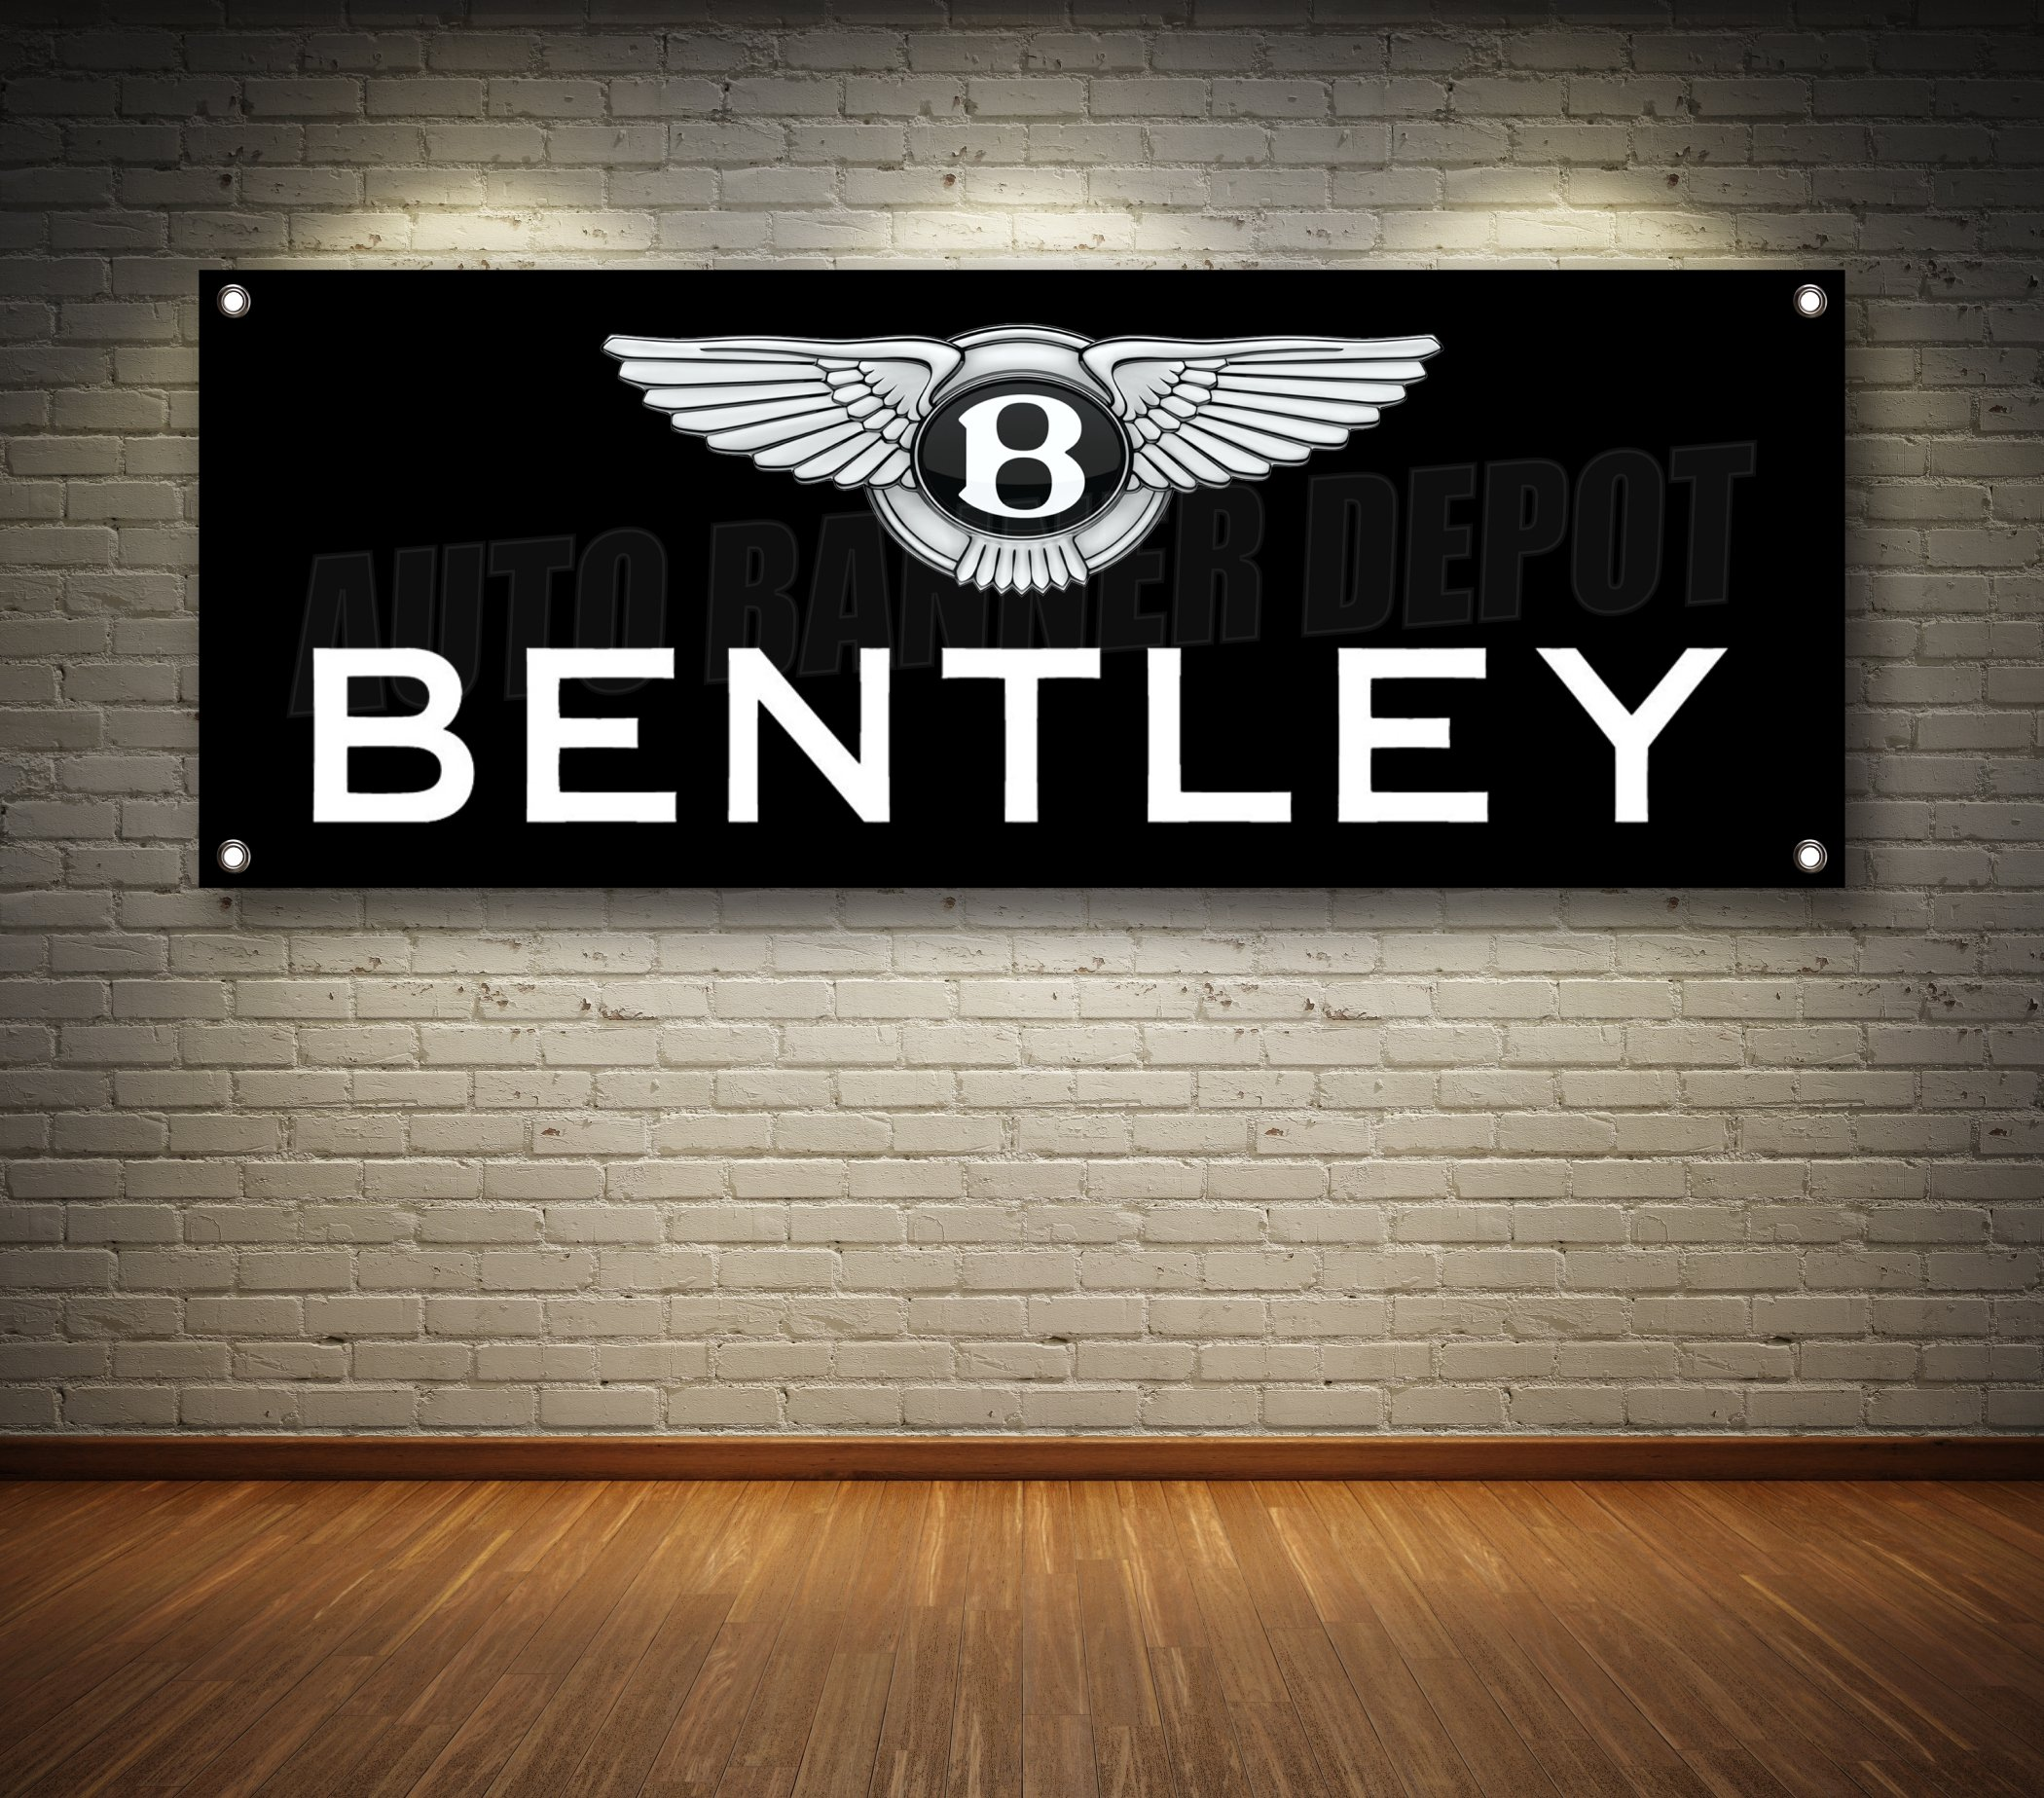 BENTLEY AUTO DEALER 1-SIDED BANNER SIGN 14oz VINYL -- MULTIPLE SIZES & STYLES (Black, 18'' x 48'')